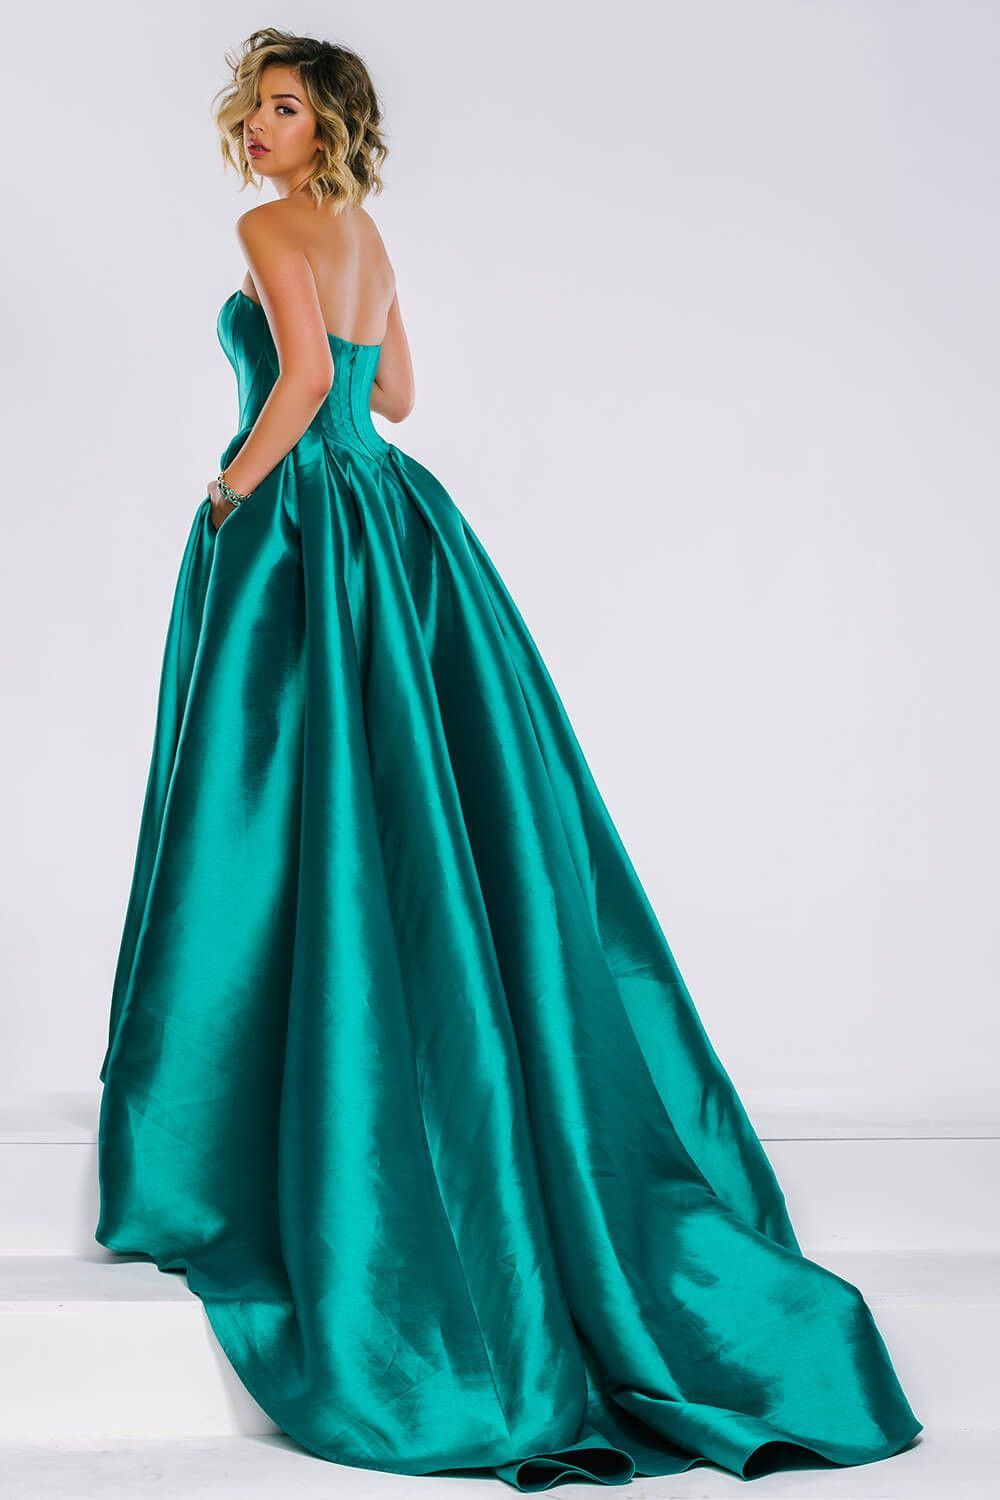 Jovani 39493 | Ball gowns, Gowns and Prom